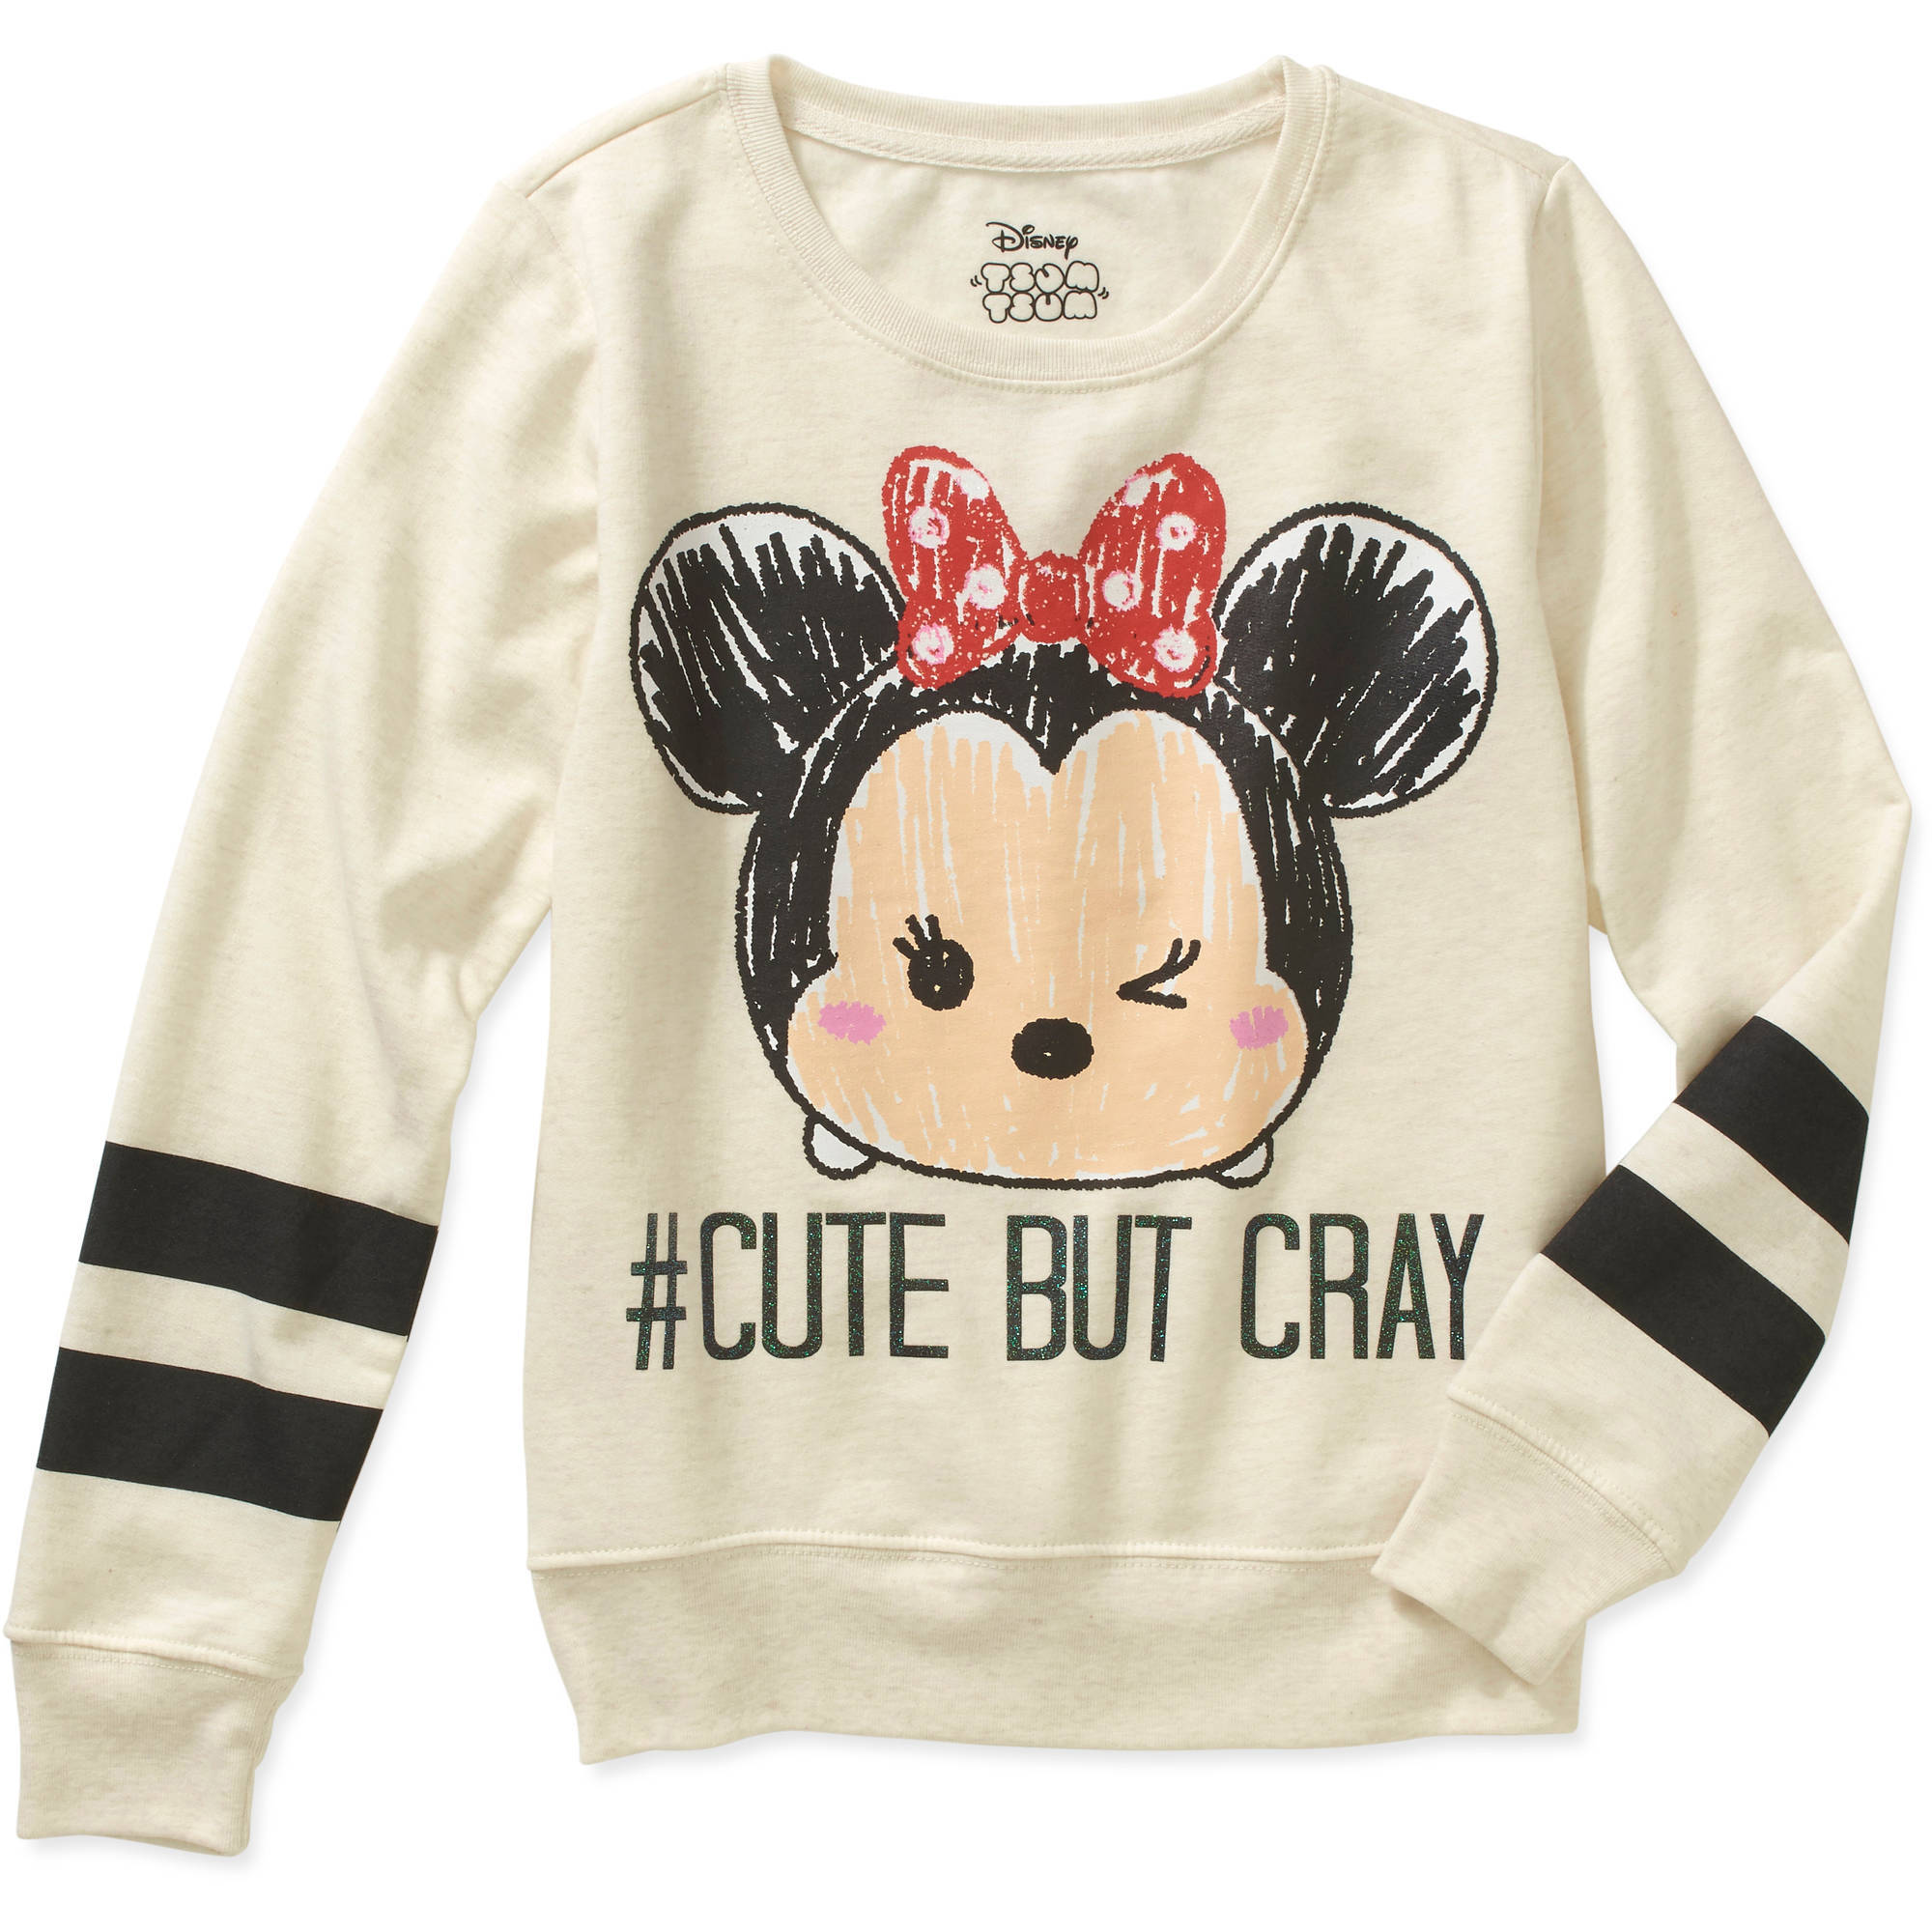 Girls' Cute But Cray Long Sleeve Crew Neck Varsity Sweater